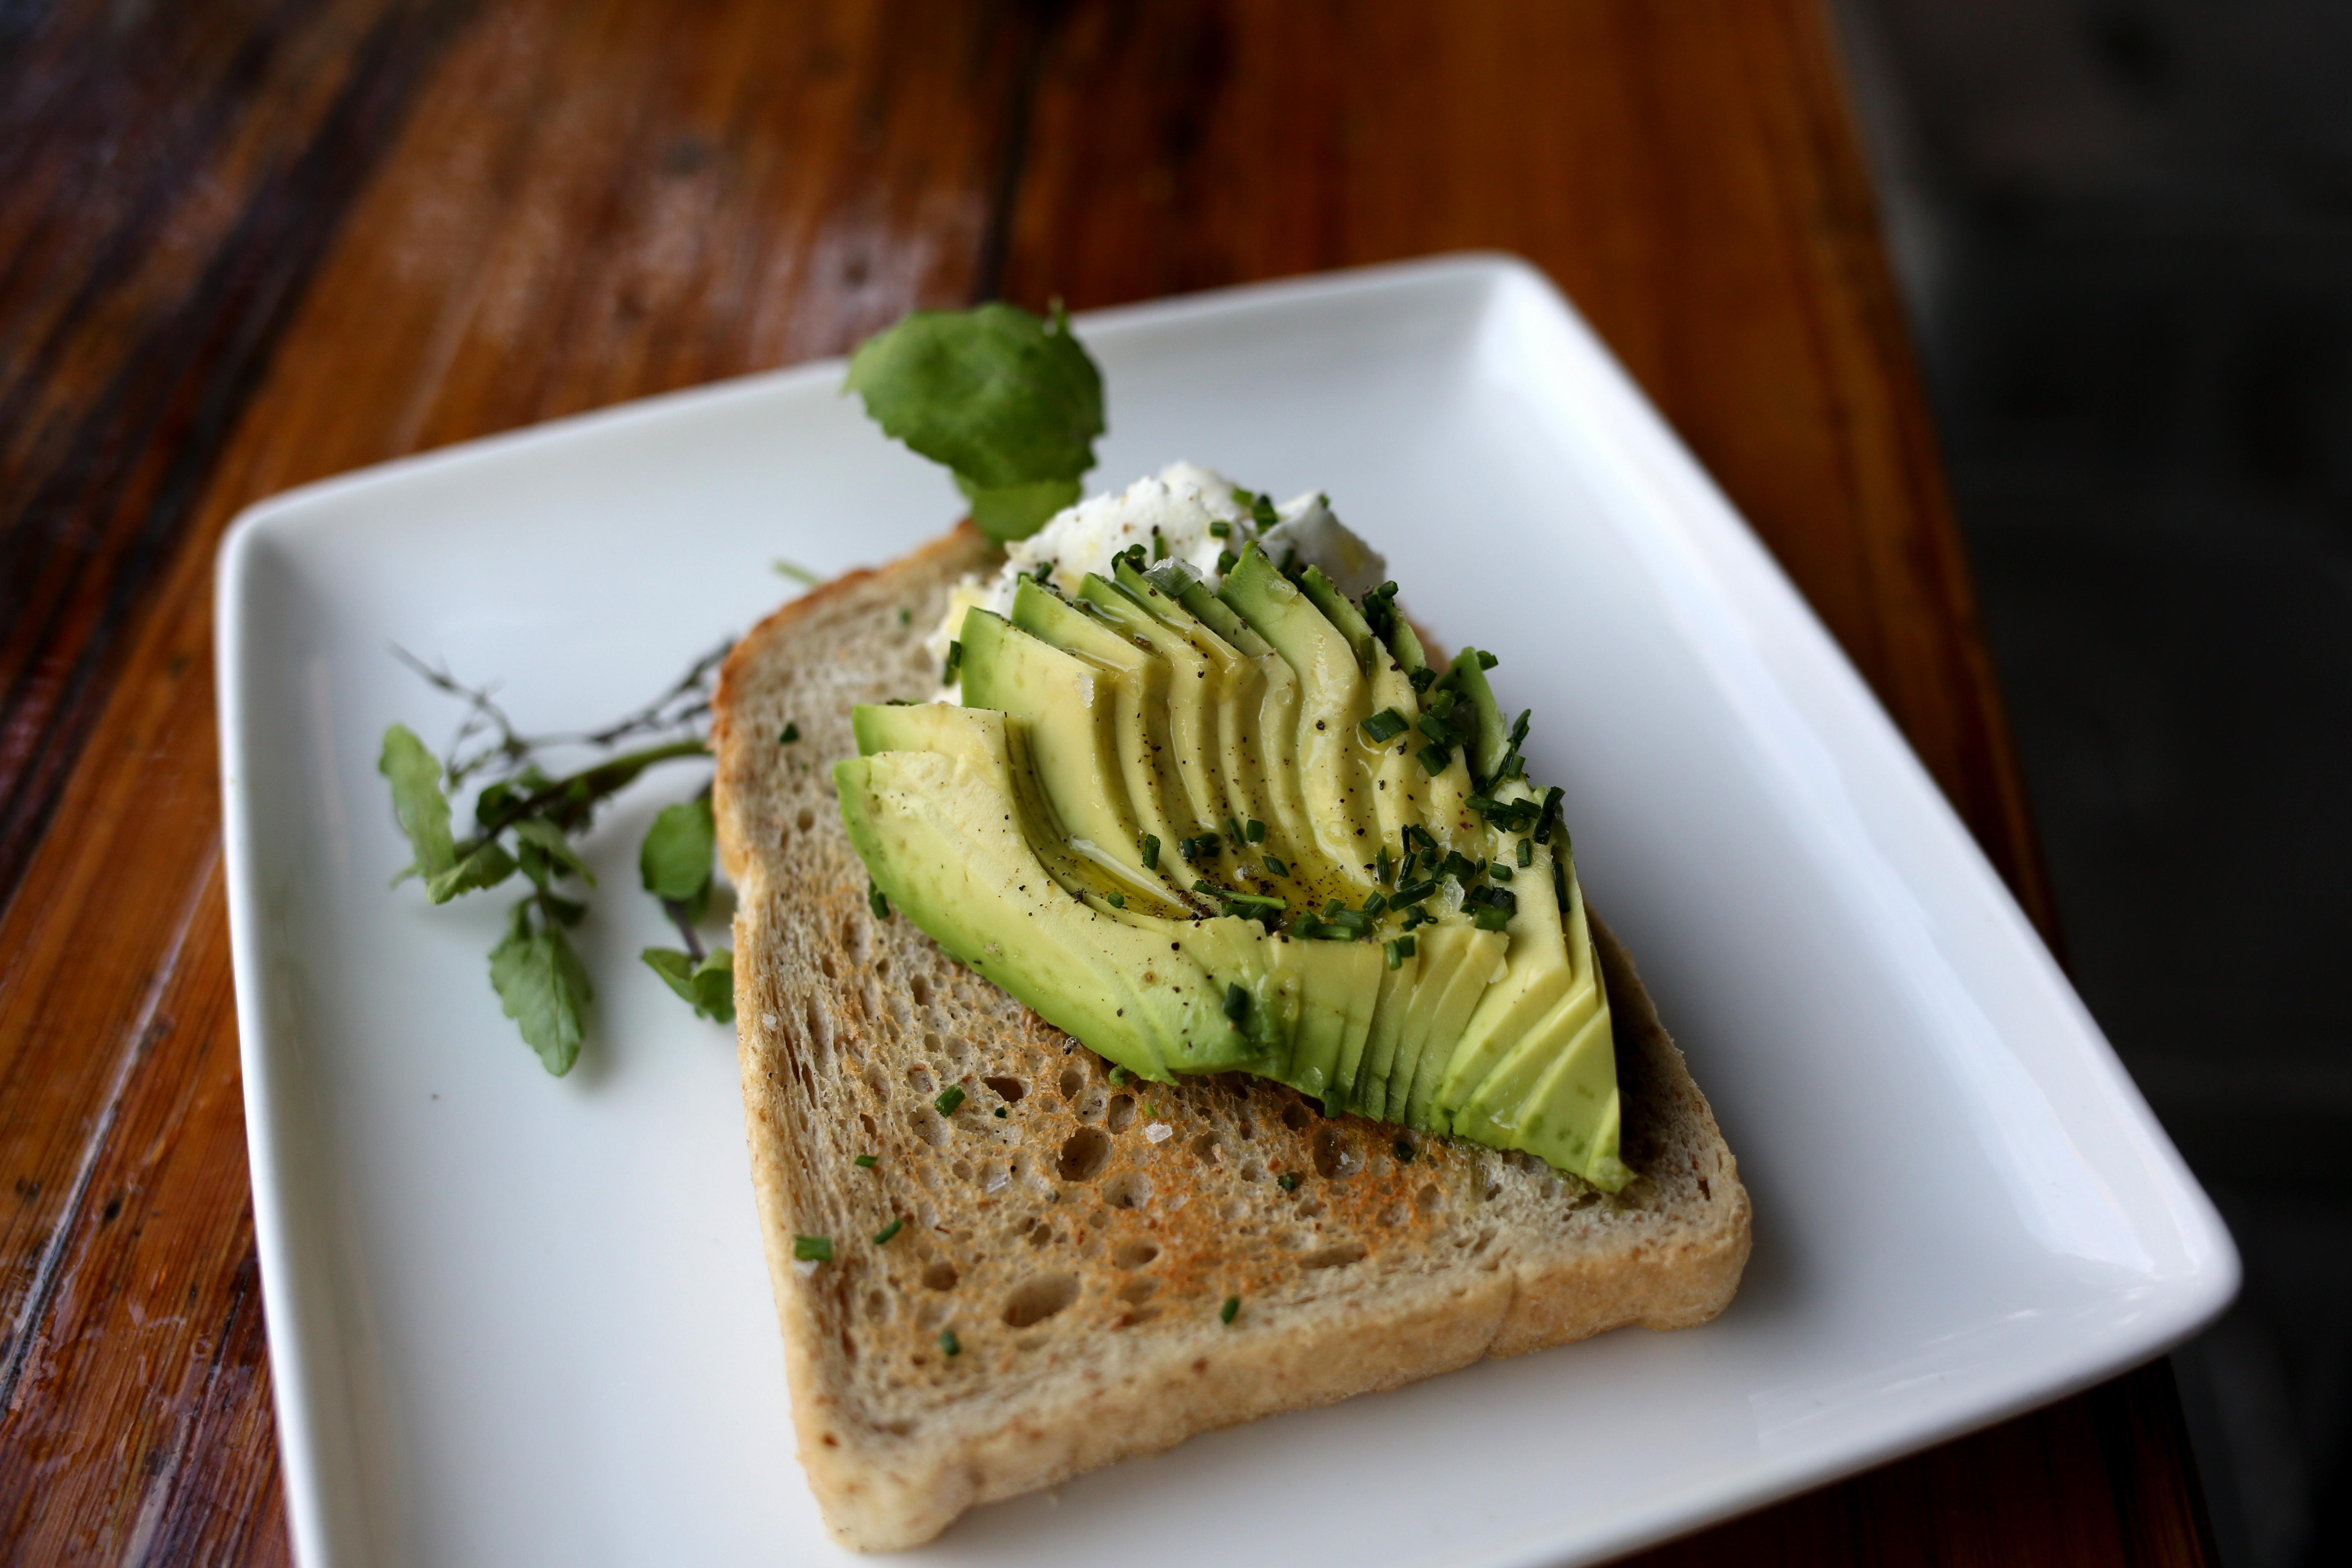 Slipstream in Logan Circle is loved for it's cafe and bar, but don't sleep on their avocado toast. It's one of the most simple versions in D.C. - it's topped with fresh, un-mashed avocado, sea salt, cracked pepper and olive oil - which is exactly how I ate it growing up in southern California. However, they added on a goat cheese mousse that makes every bite melt-in-your-mouth delicious. You can also add on bacon or salmon if you want something a little more substantial, but I'm a bit of a purist. (Amanda Andrade-Rhoades/DC Refined)